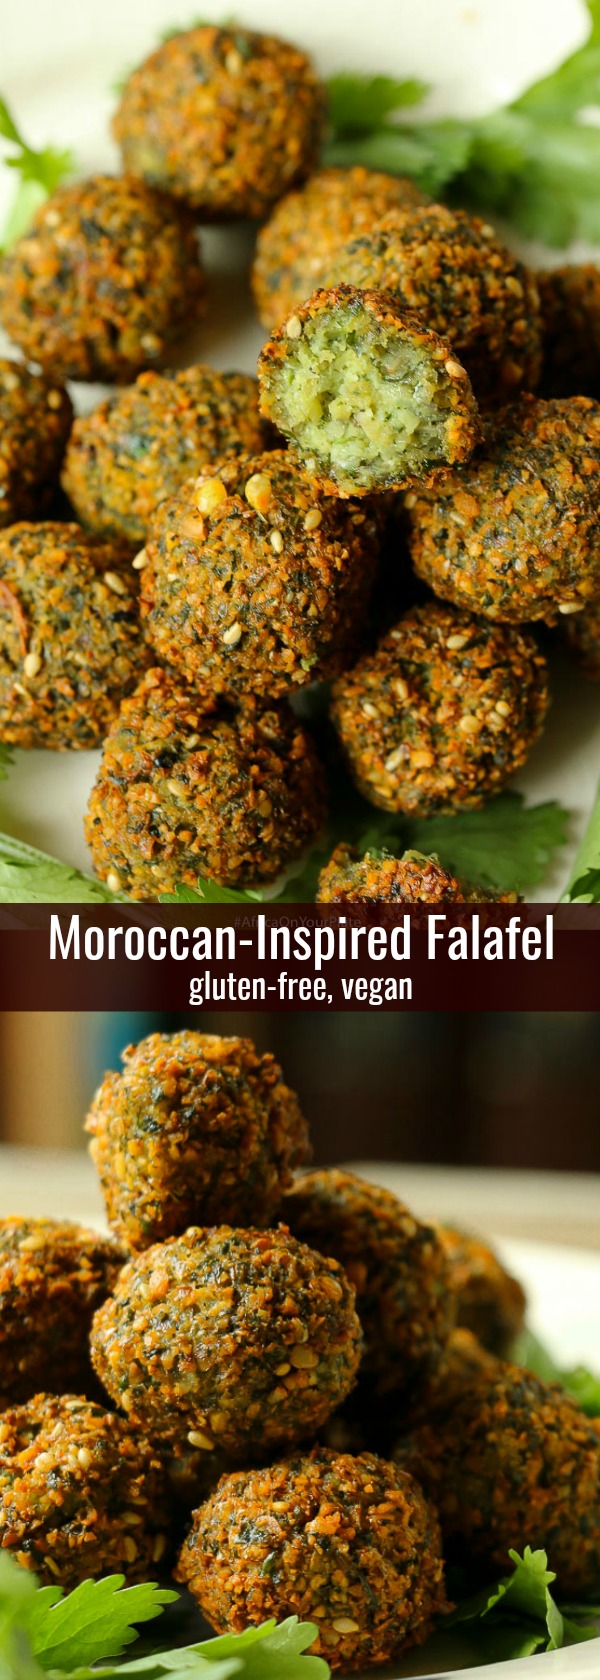 Moroccan Falafel Recipe MAY 1, 2018 This Moroccan-inspired falafel recipe delivers a delicately crispy falafel on the outside with a soft buttery interior. Herbed and spiced to perfection, they are super easy to make. Eat them on their own, or in a falafel salad or as a snack.